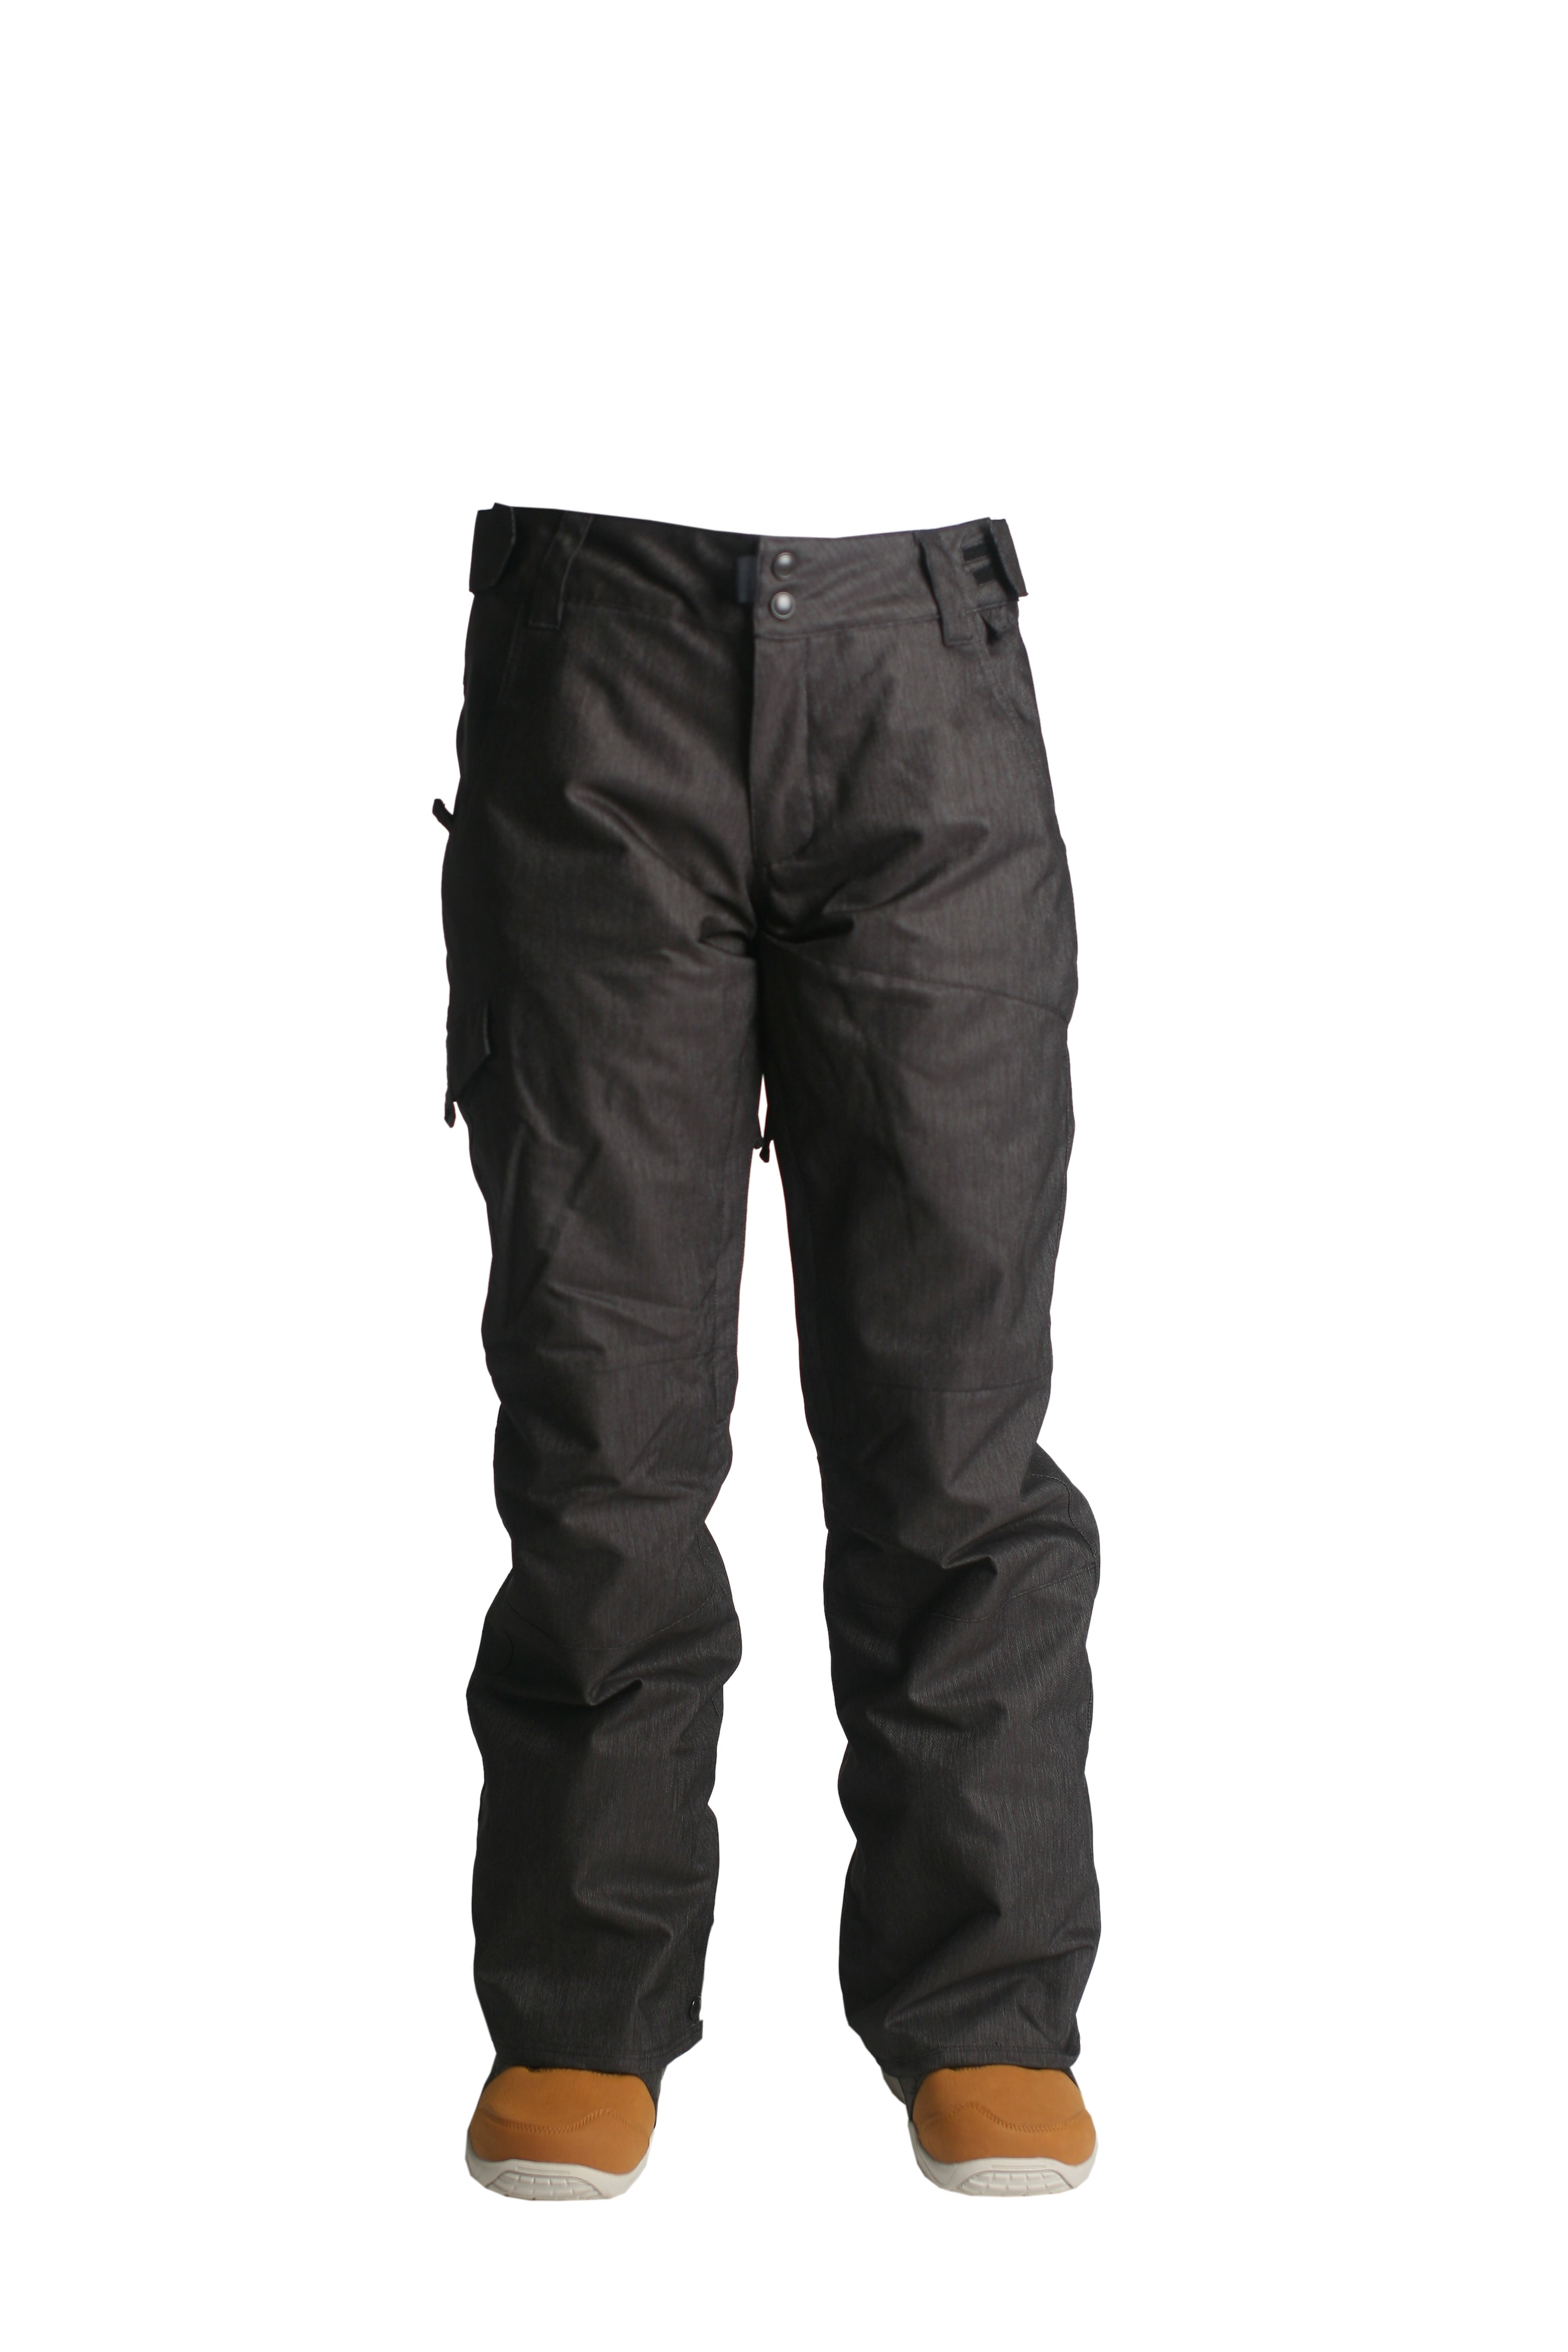 Roxhill Pant 16/17 by RIDE